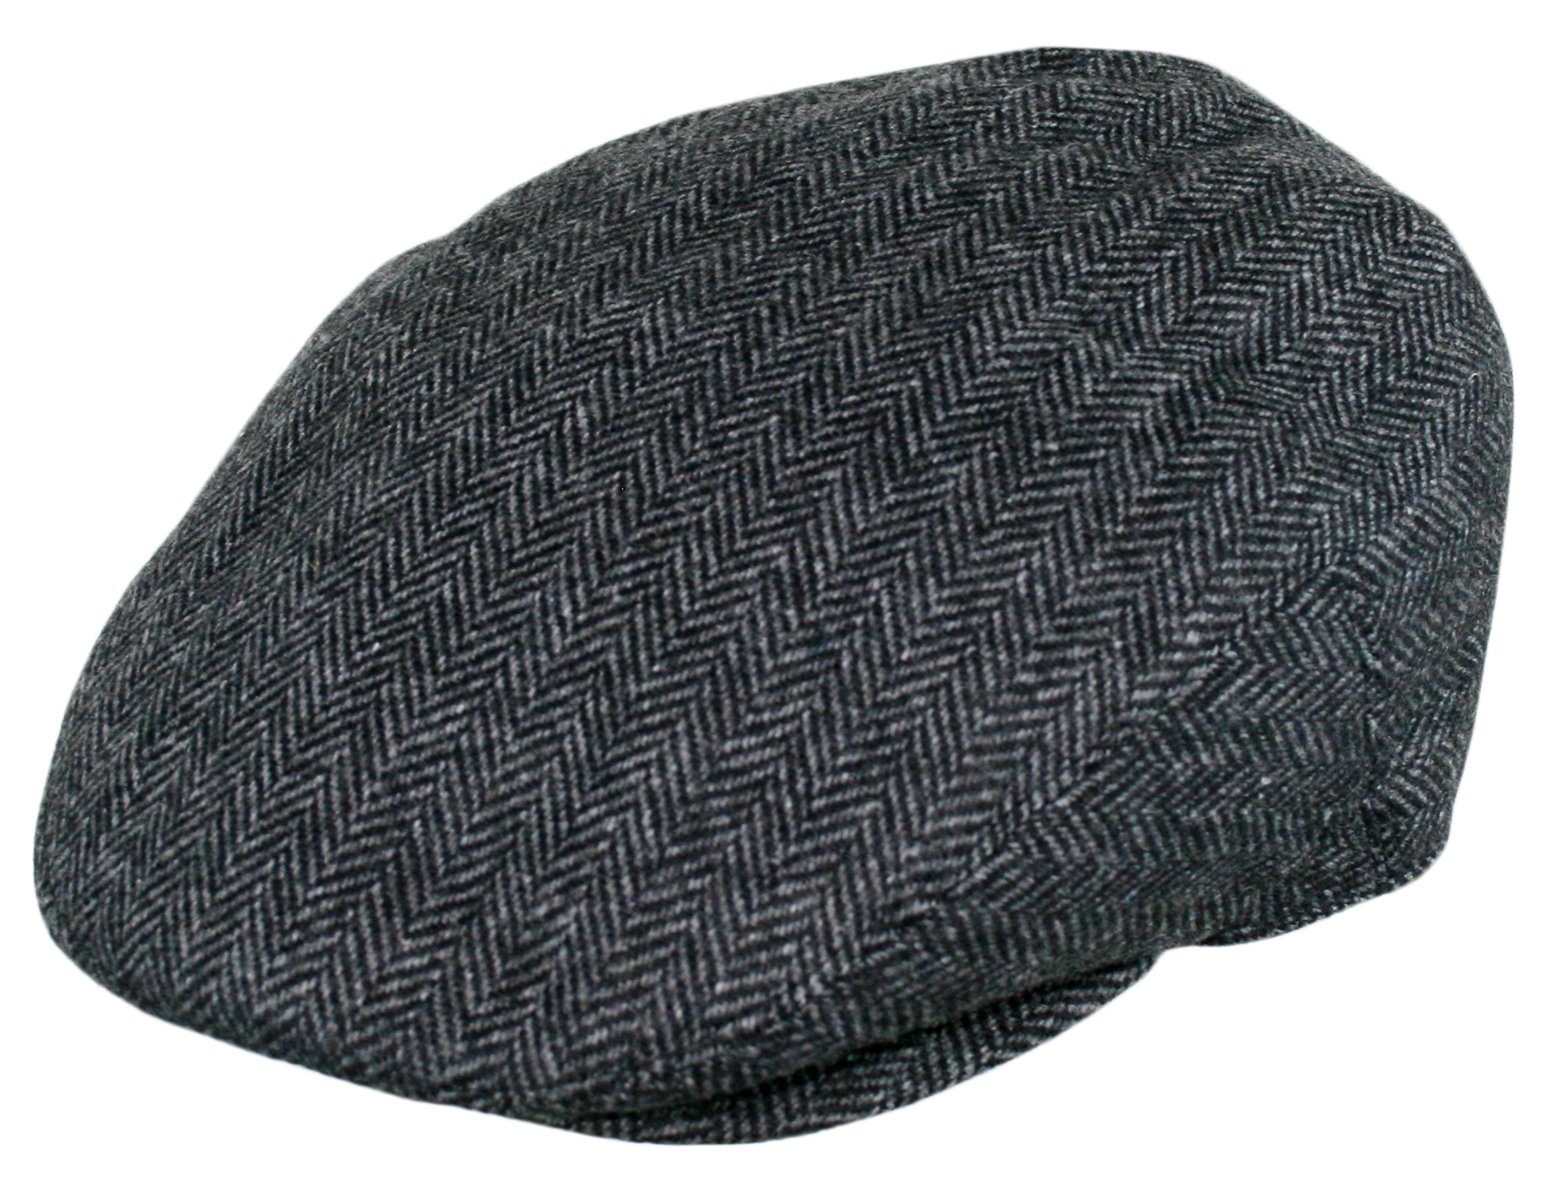 9e4bef24 Epoch hats Men's Premium Wool Blend Classic Flat IVY newsboy Collection Hat  product image